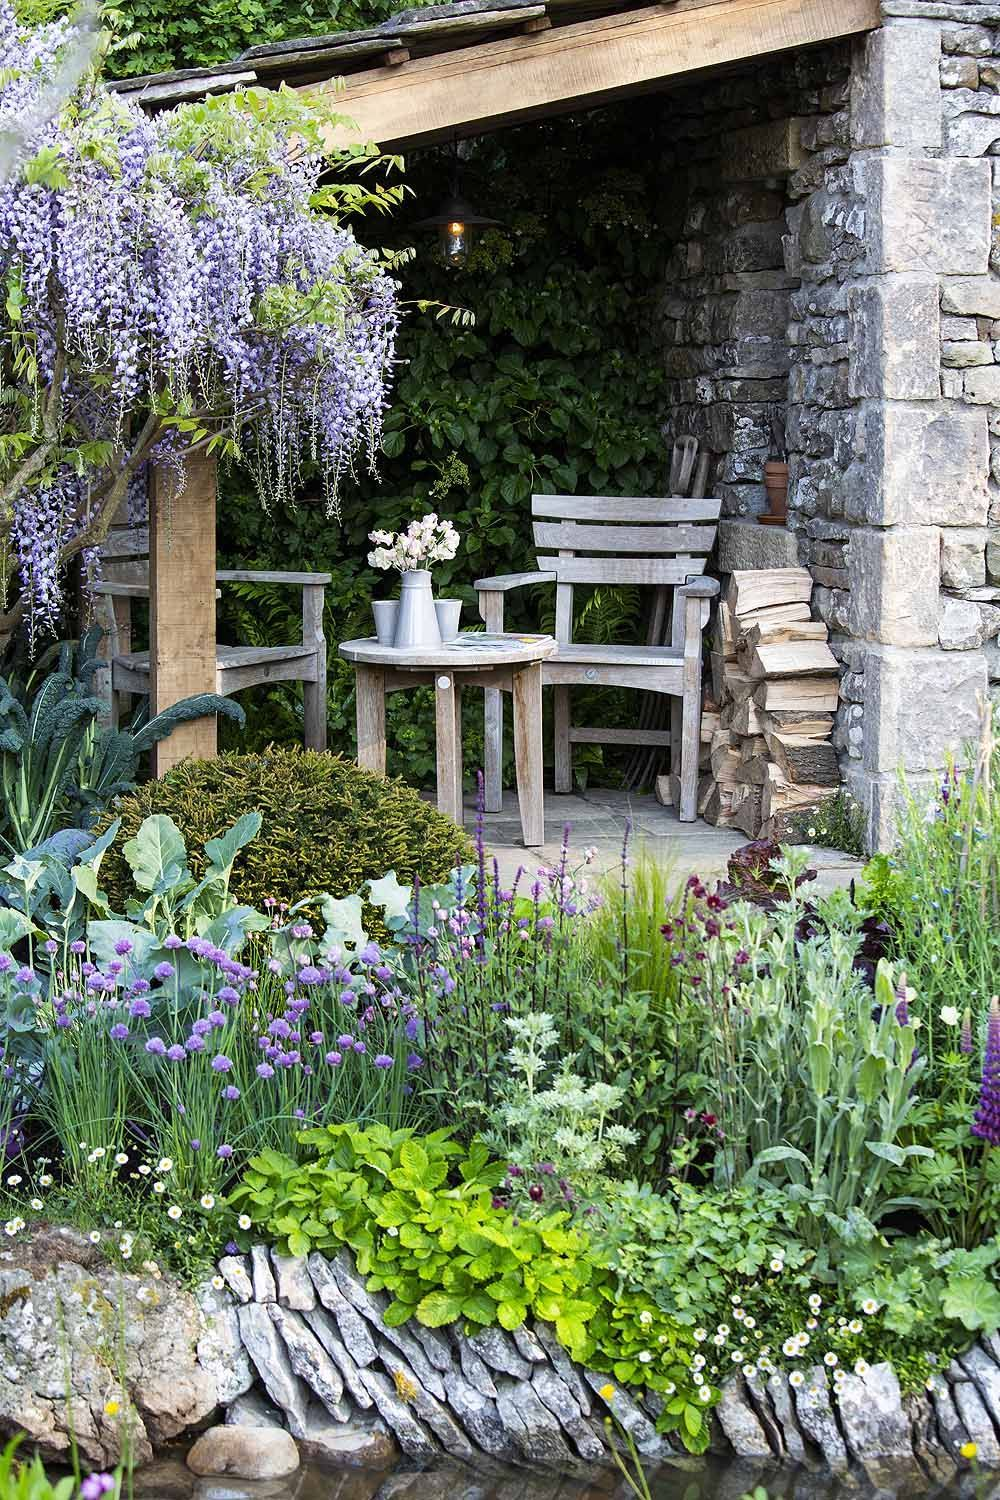 Welcome to Yorkshire garden wins BBC's People's Choice ...